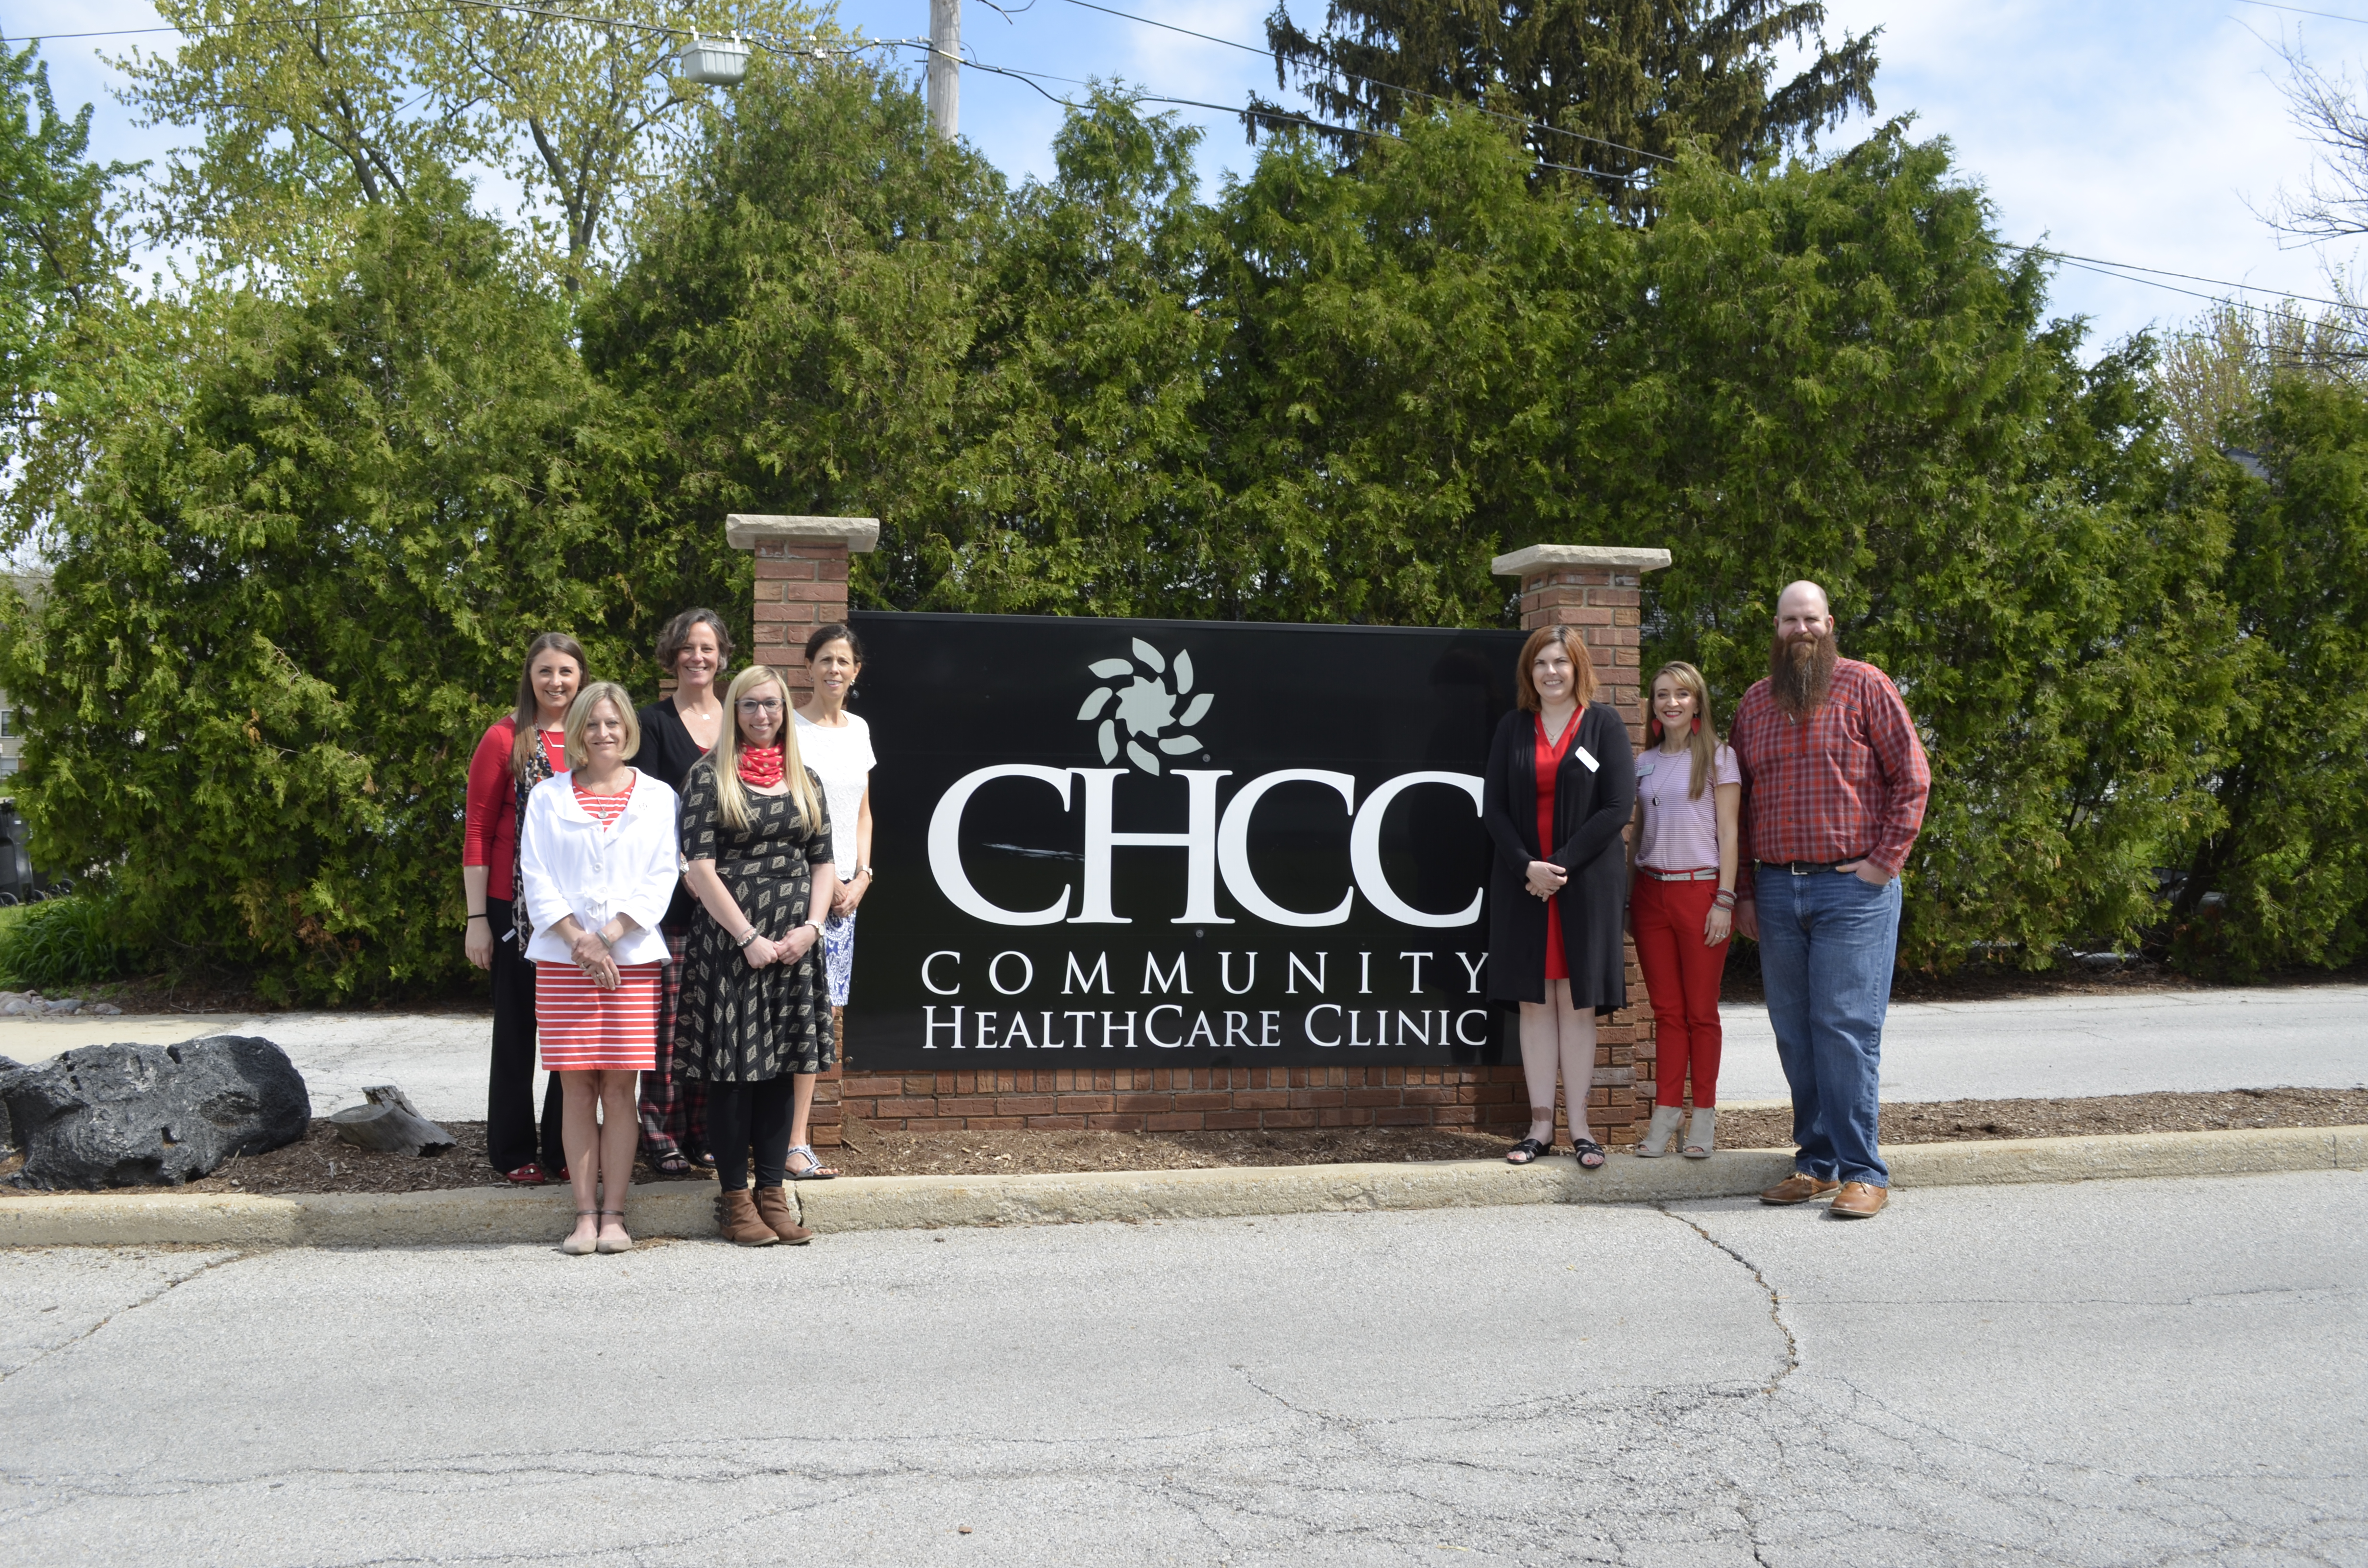 People standing next to CHCC sign